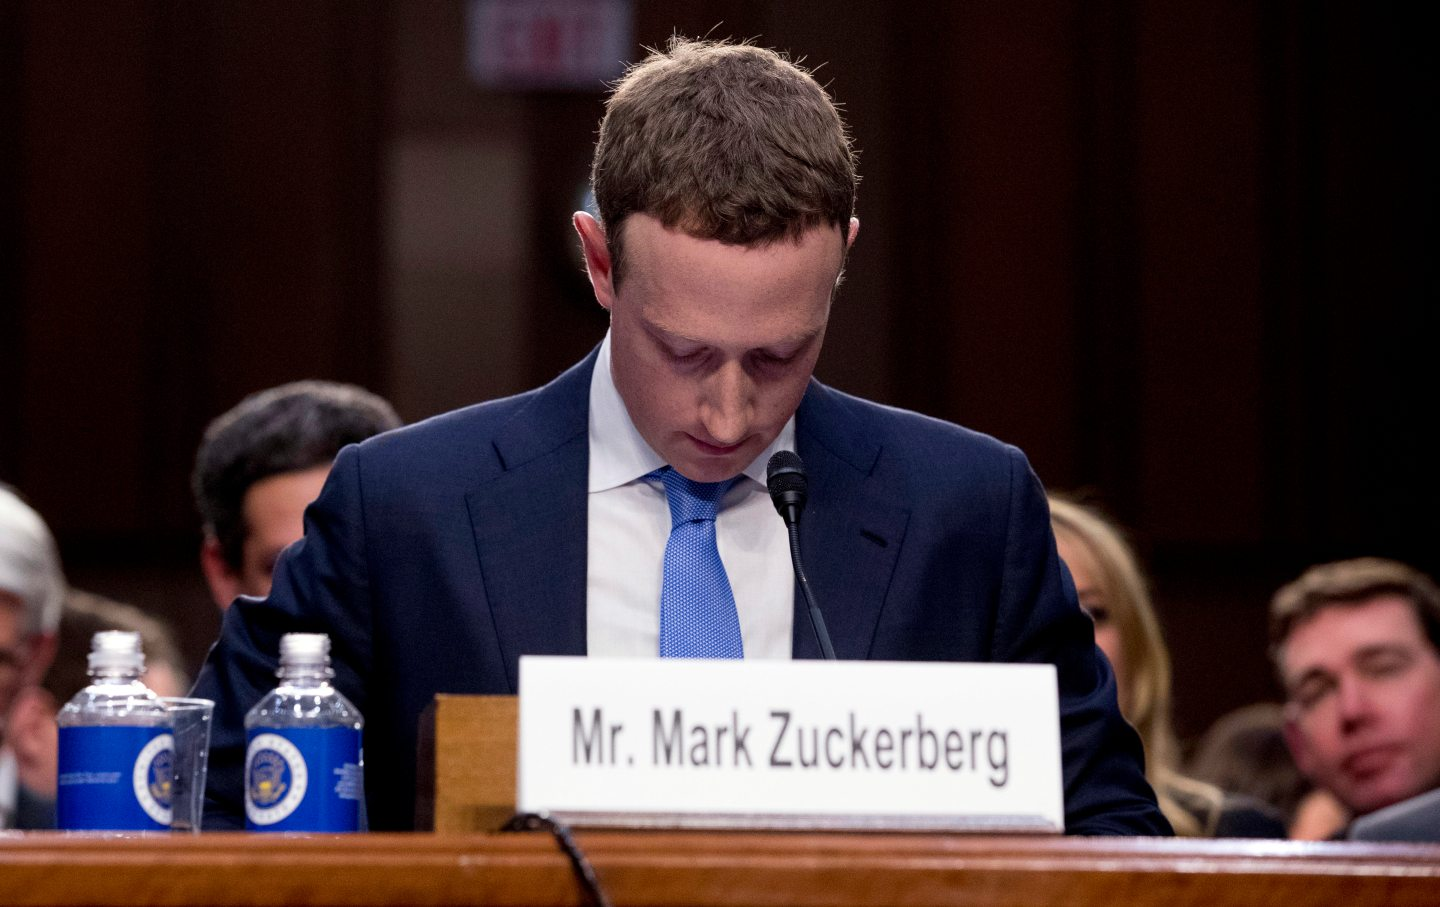 Mark Zuckerberg stares down at his lap